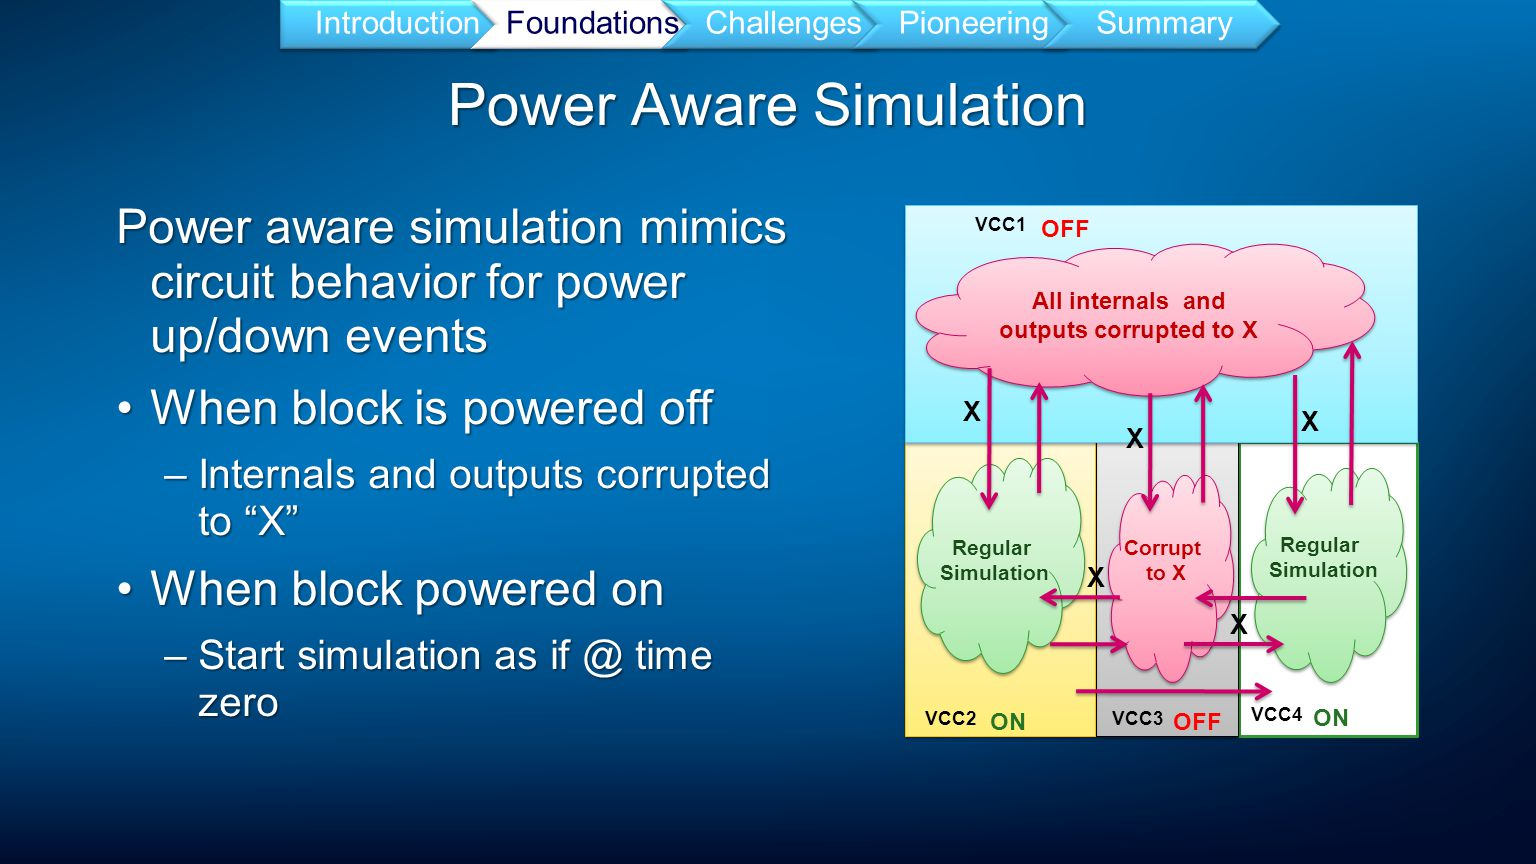 Power Aware Simulation IntroductionFoundationsChallengesPioneeringSummary Power aware simulation mimics circuit behavior for power up/down events When block is powered offWhen block is powered off –Internals and outputs corrupted to X When block powered onWhen block powered on –Start simulation as if @ time zero All internals and outputs corrupted to X Regular Simulation Regular Simulation Corrupt to X Regular Simulation Regular Simulation VCC2VCC3 VCC4 VCC1 OFF ONOFF ON X X X X X